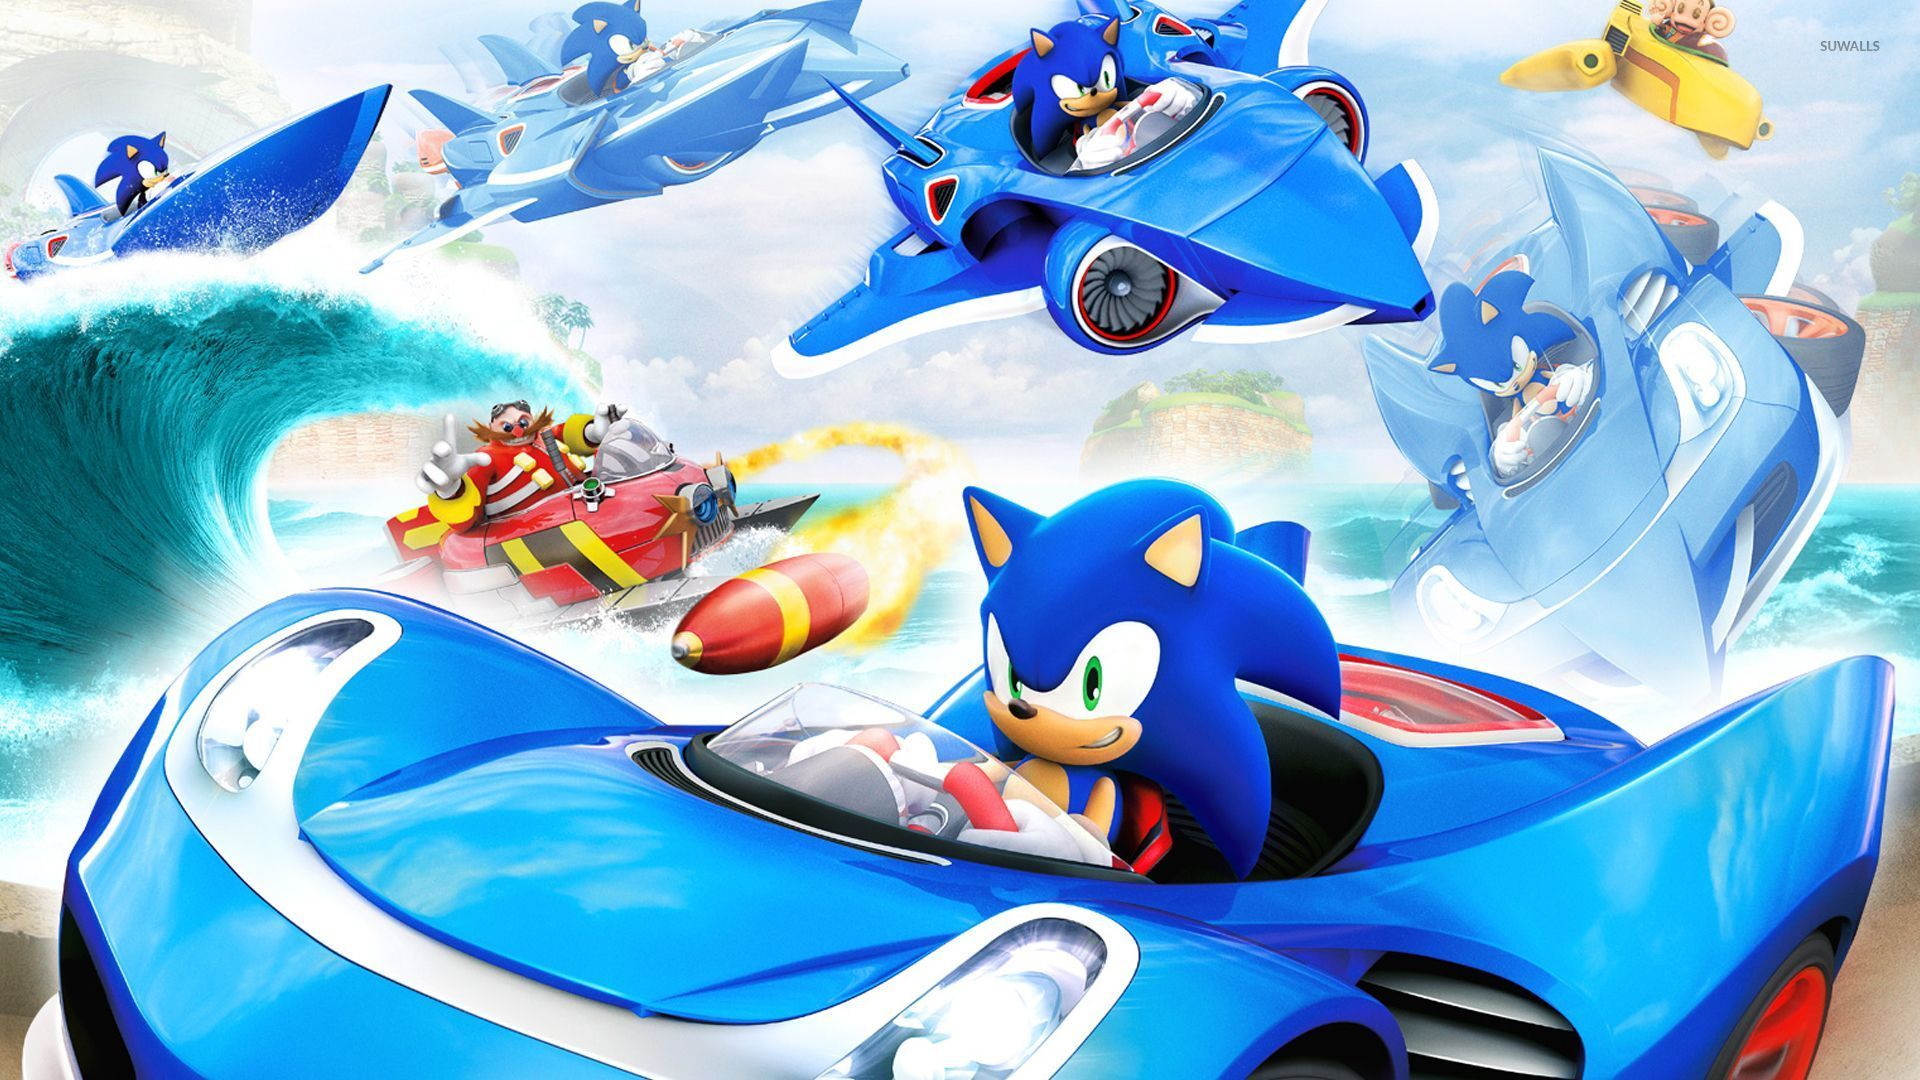 sonic the hedgehog 4 wallpaper game wallpapers 32864